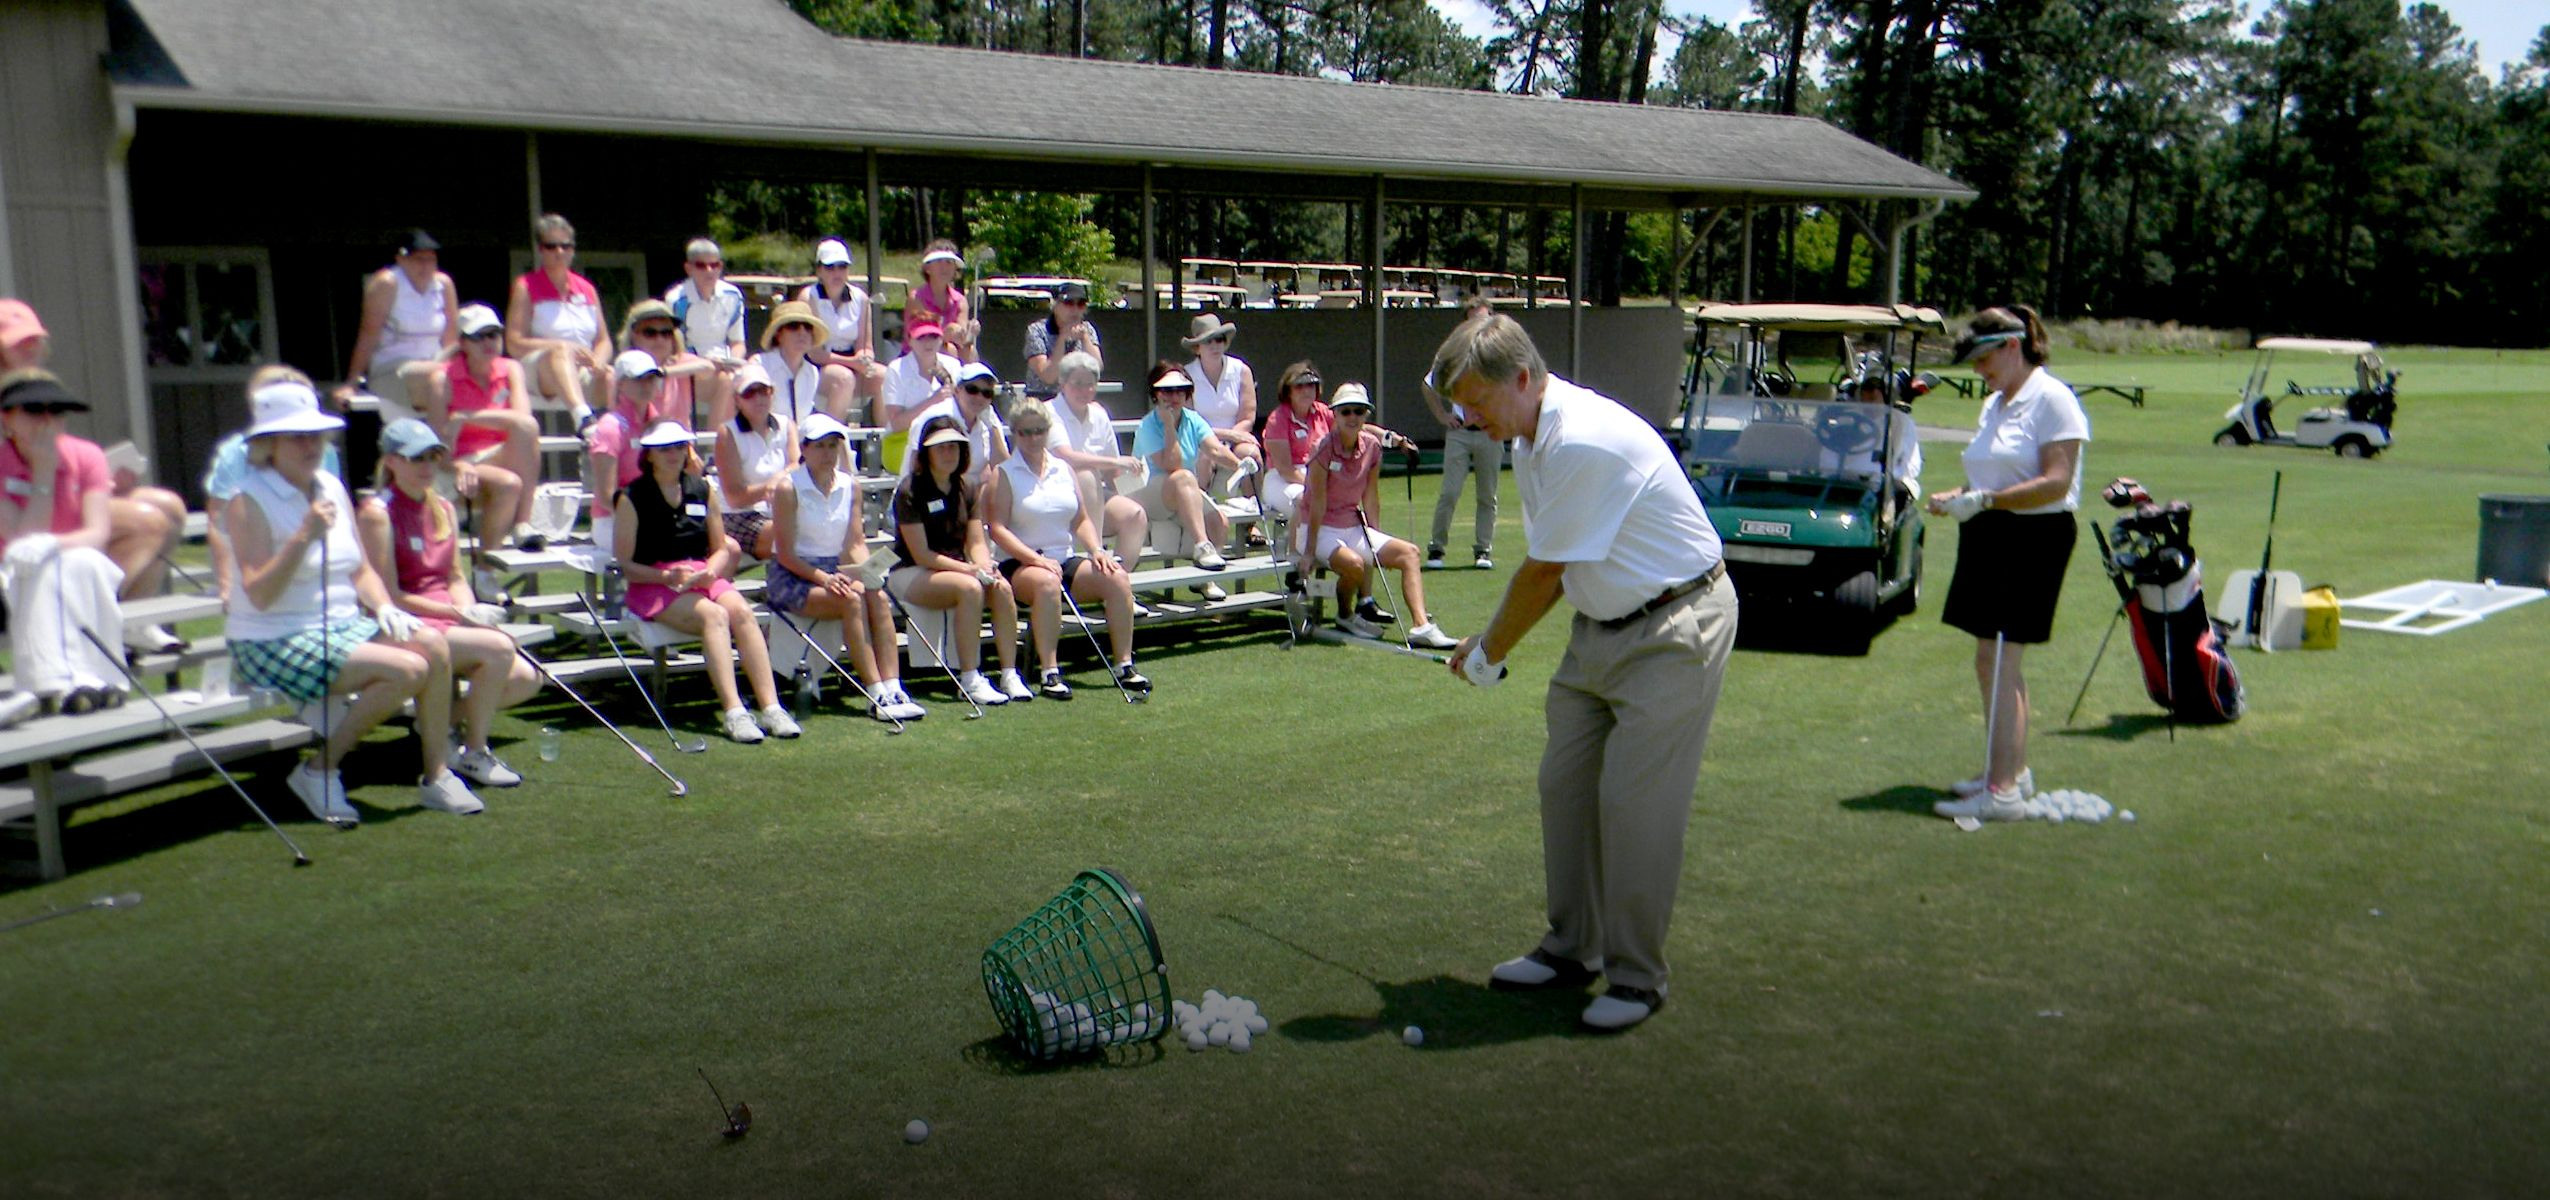 Golf Instructors Mid Pines Inn And Golf Club